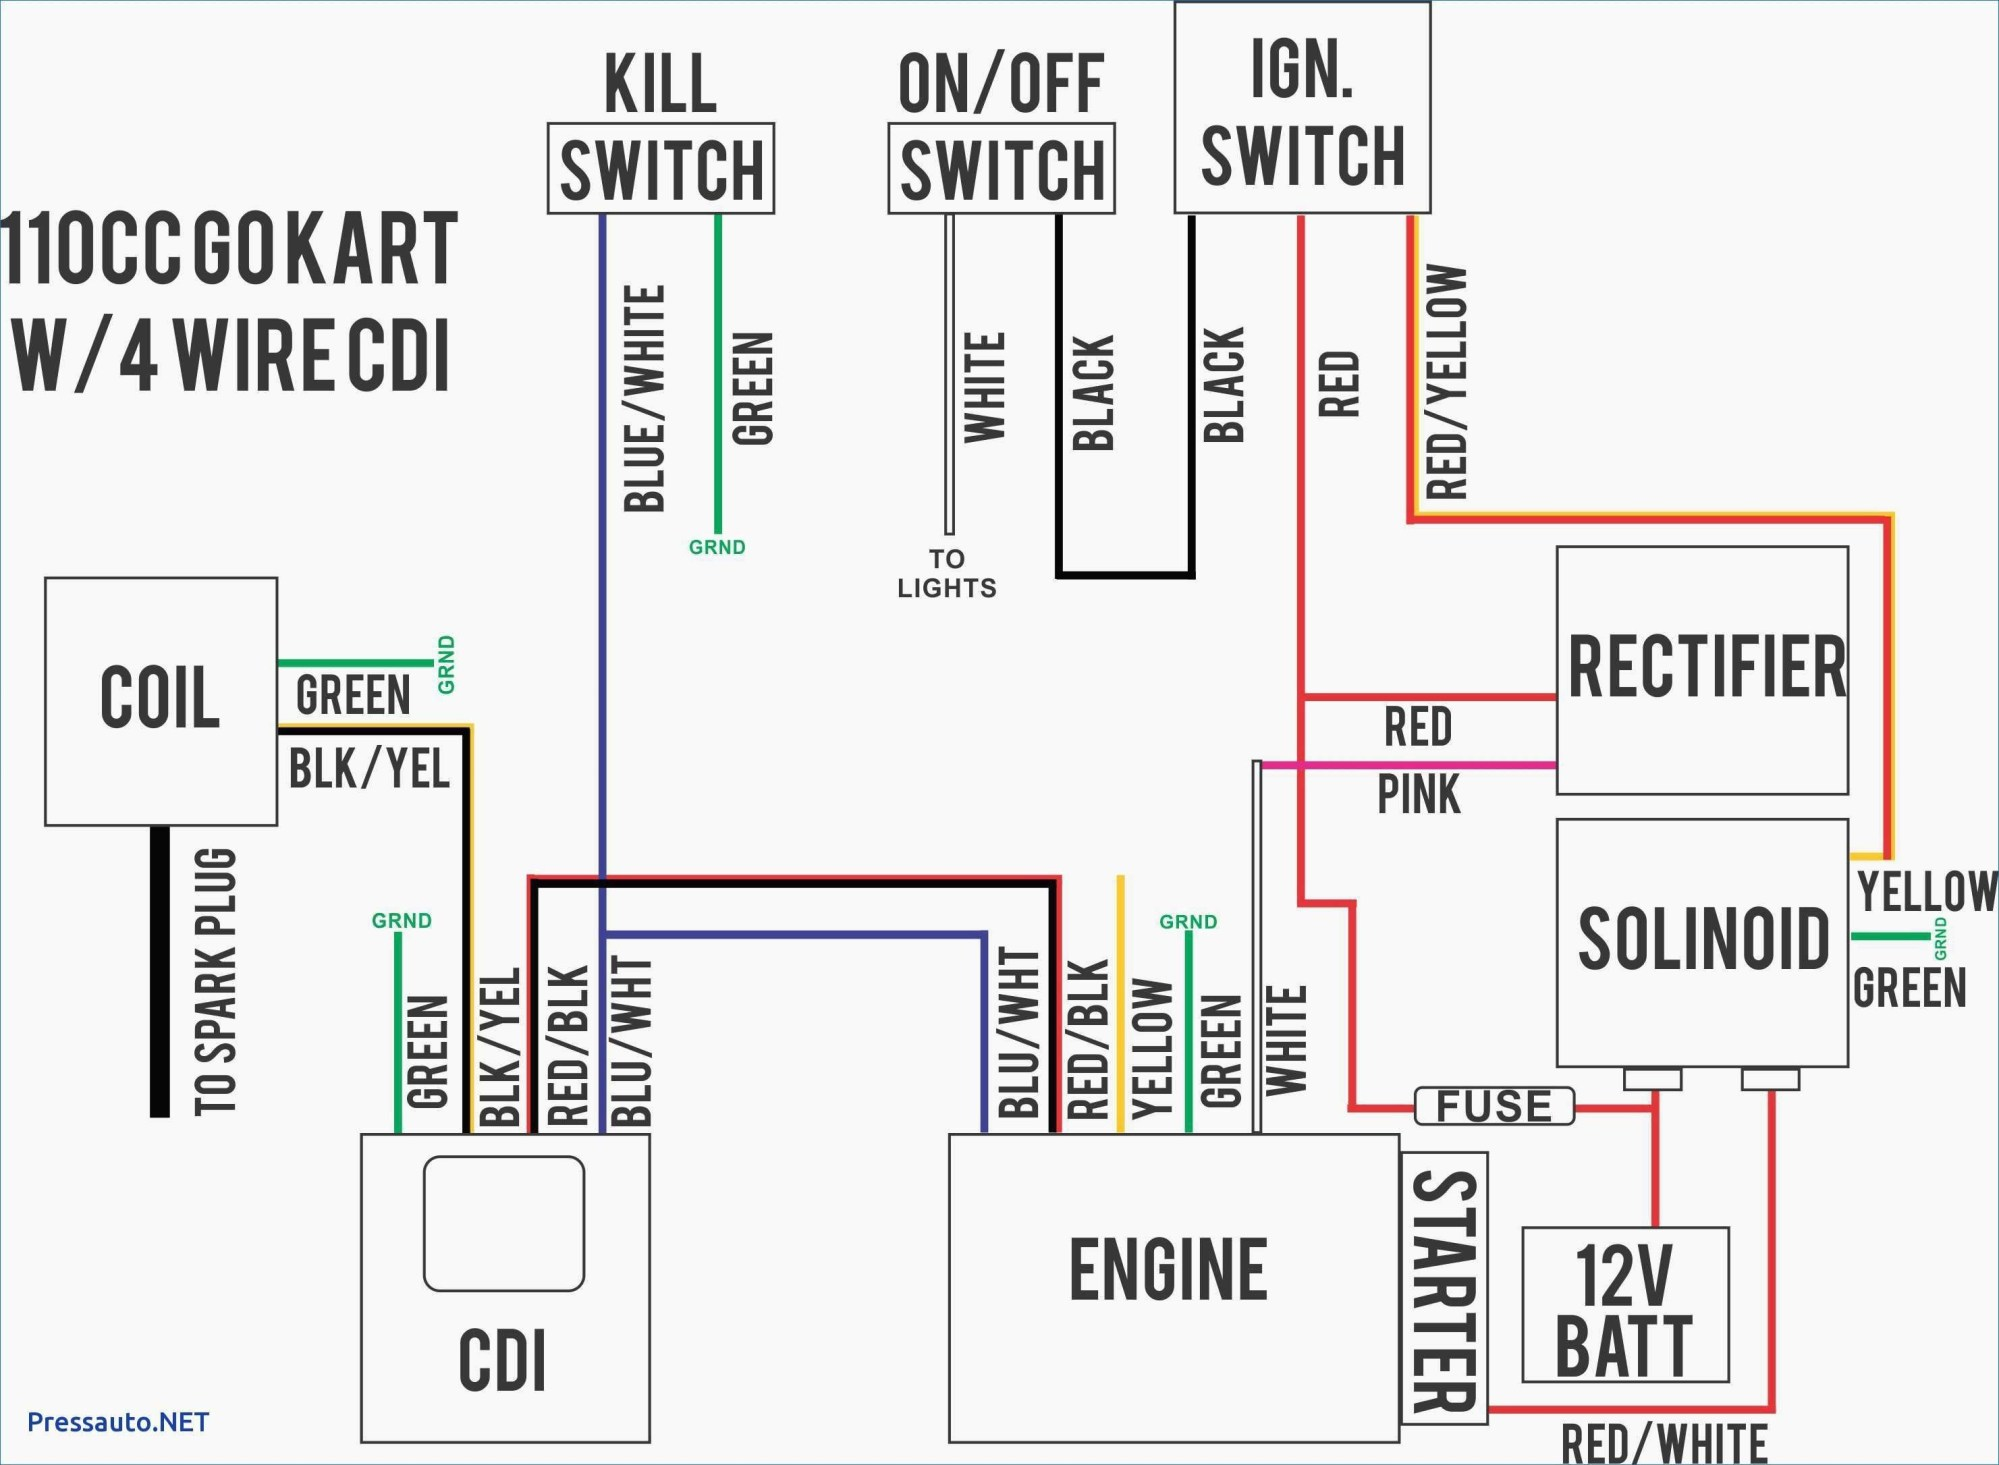 hight resolution of 6 wire rectifier schematic manual e book gy6 6 wire regulator diagram